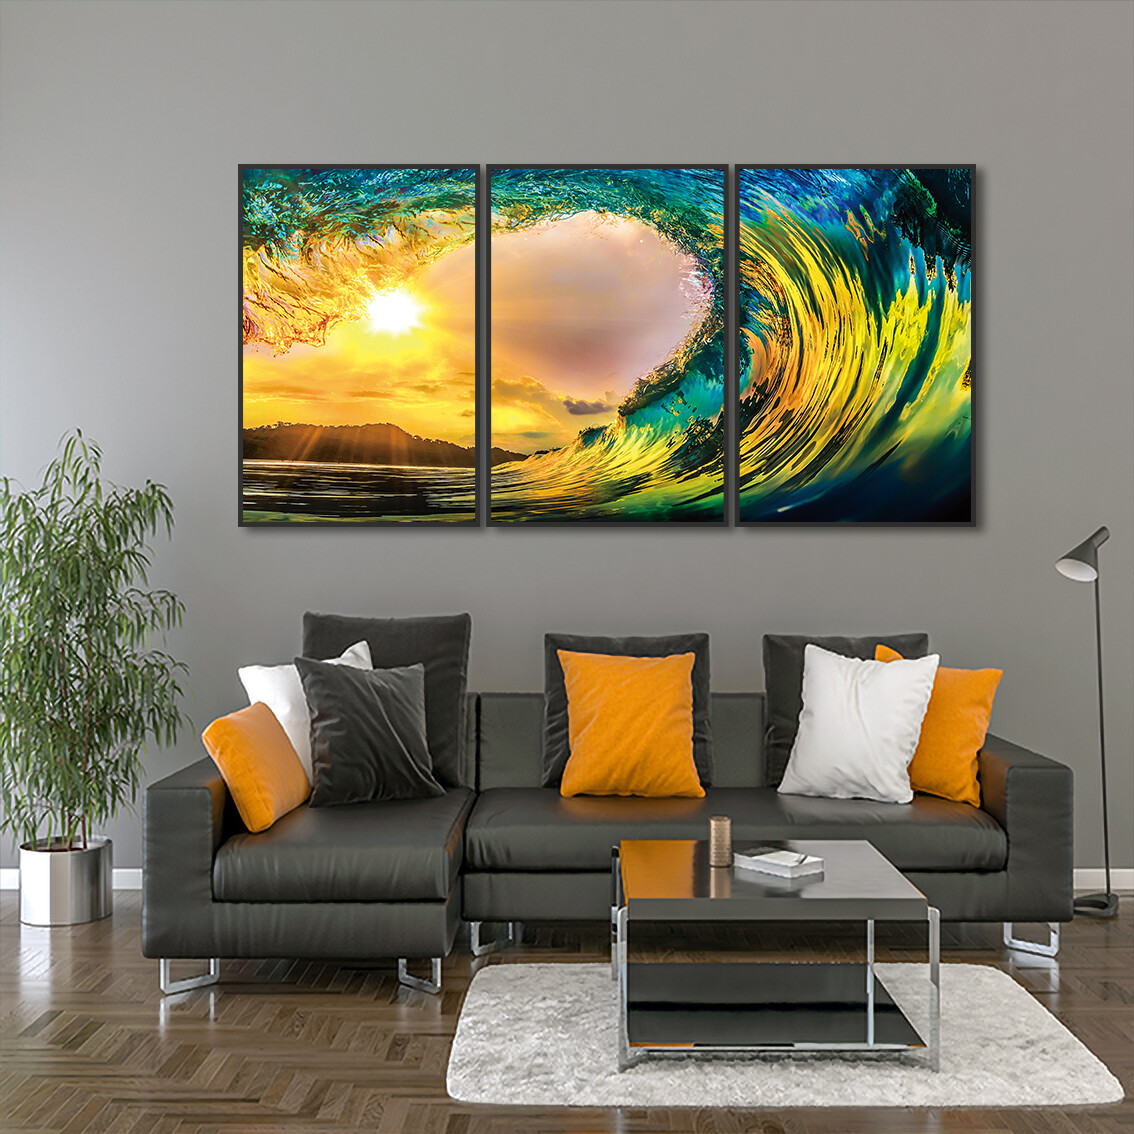 Tropical Sunset ( Framed )  - Modern Luxury Wall art Printed on Acrylic Glass - Framed and Ready to Hang